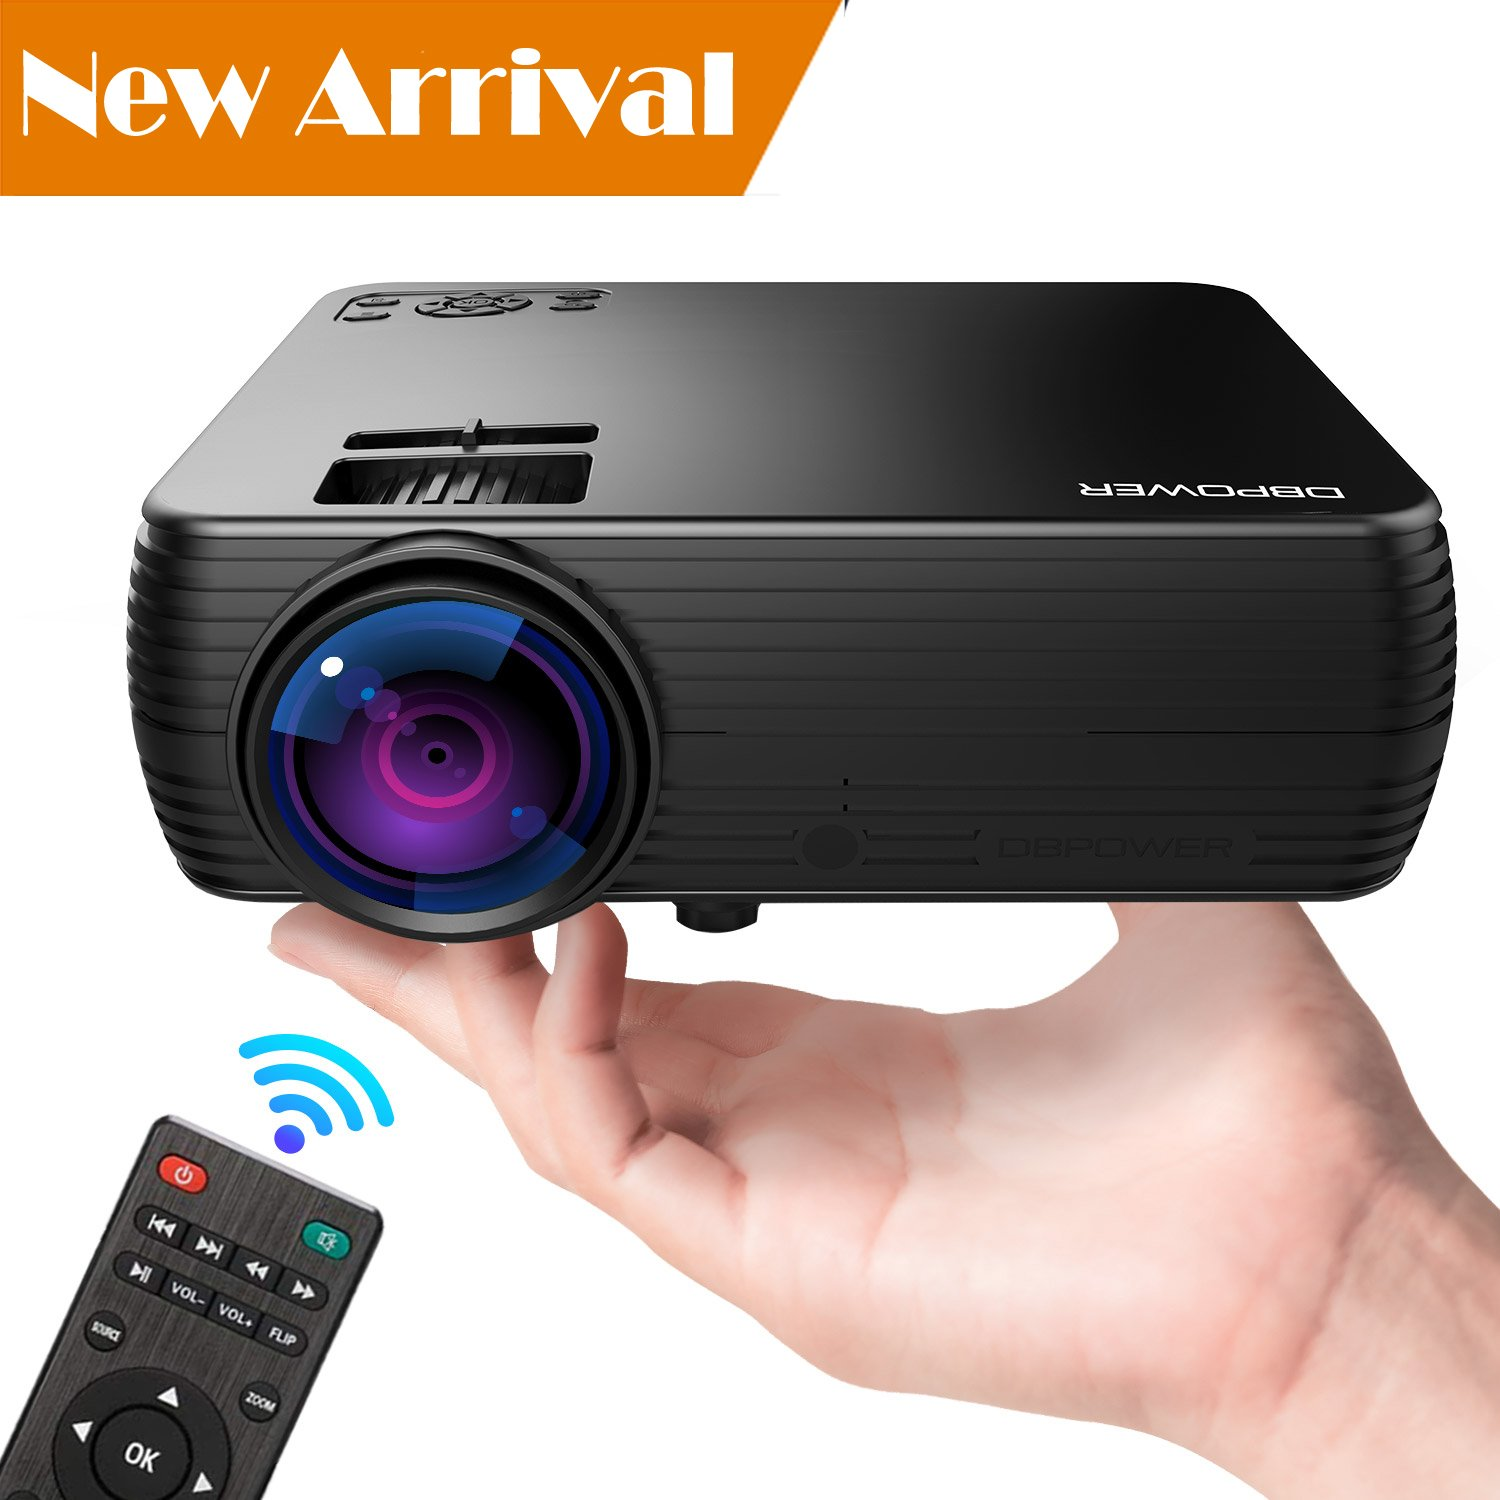 Projector, DBPOWER Mini Portable Video Projector 176'' Display 50,000 Hours LED Full HD Projector 1080P 2018 Released, Compatible with HDMI VGA AV USB TF Amazon Fire TV Stick